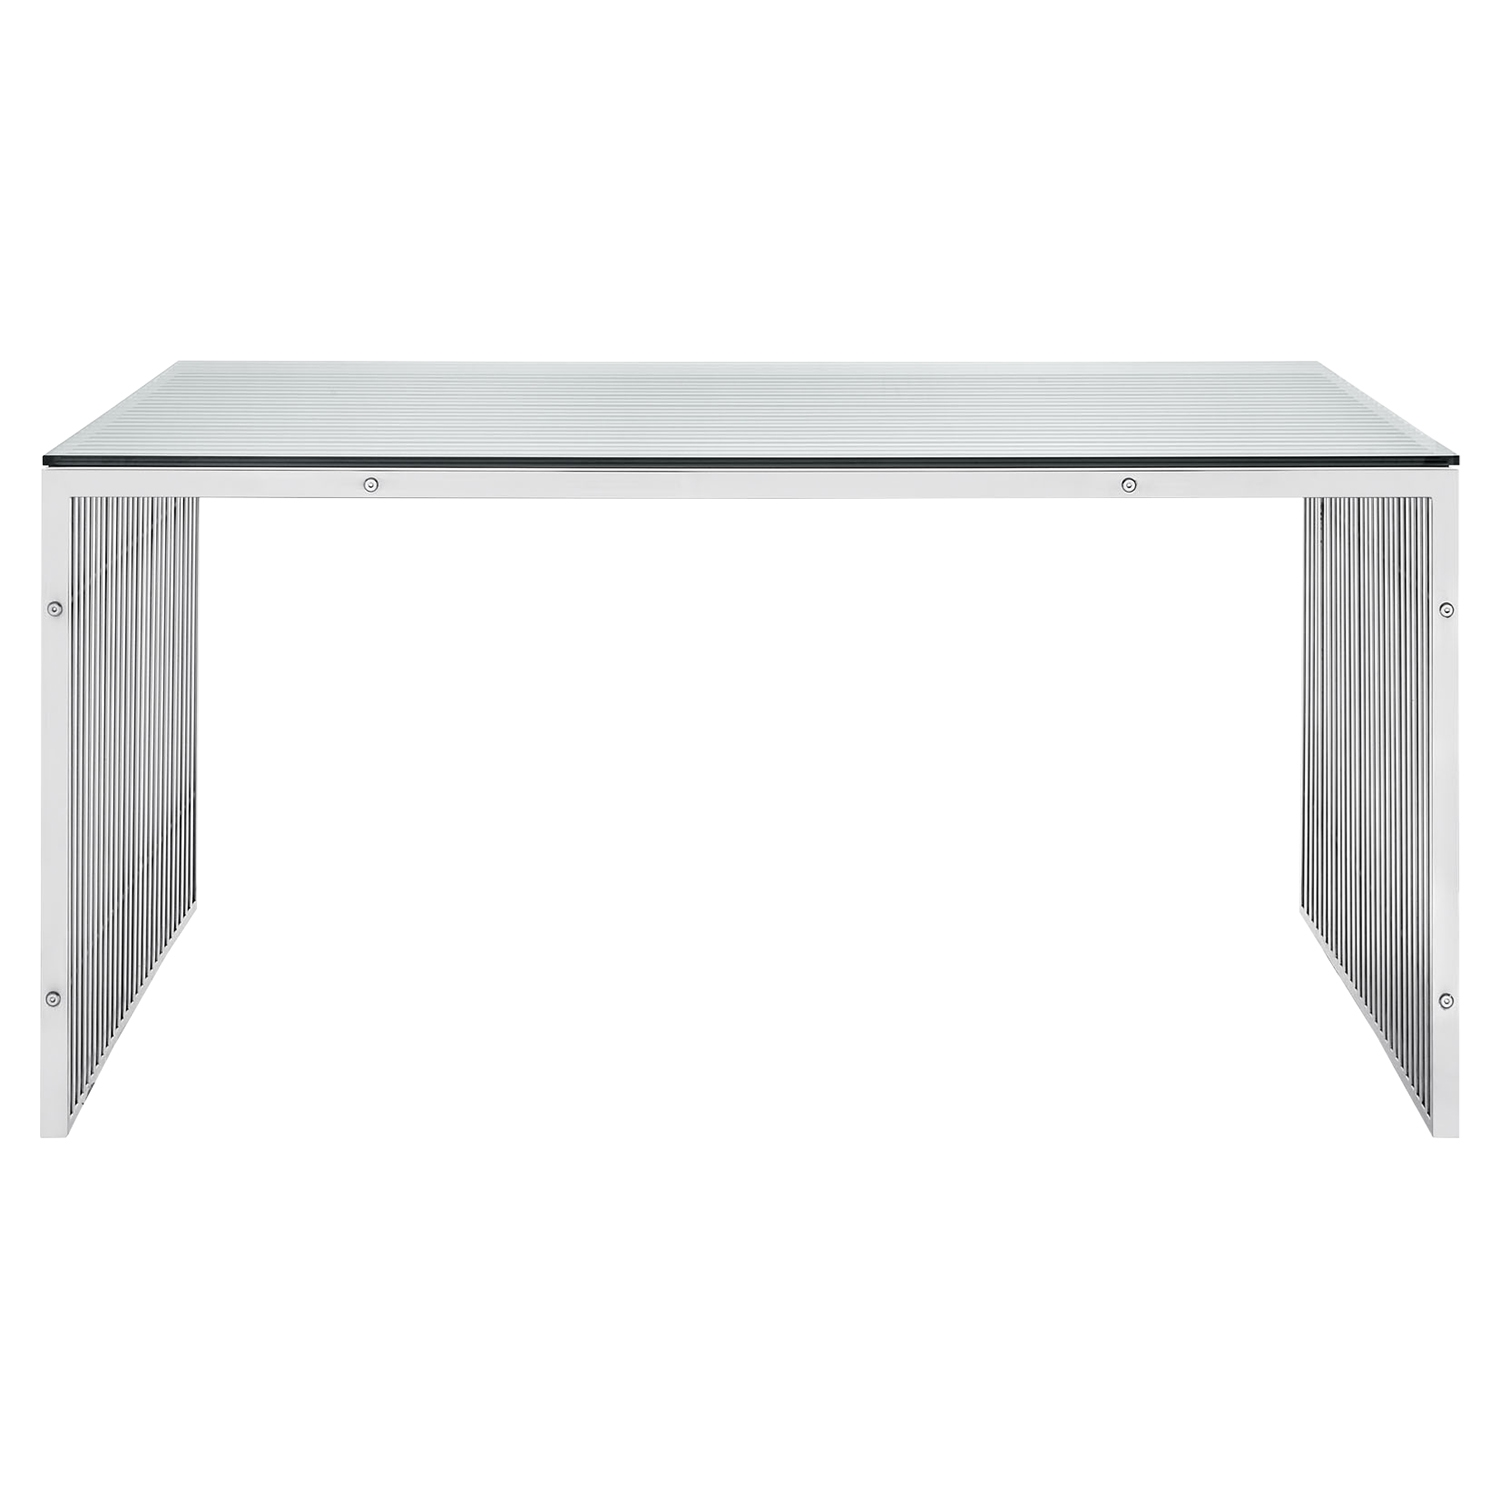 Gridiron Stainless Steel Dining Table - Rectangular - EEI-1433-SLV